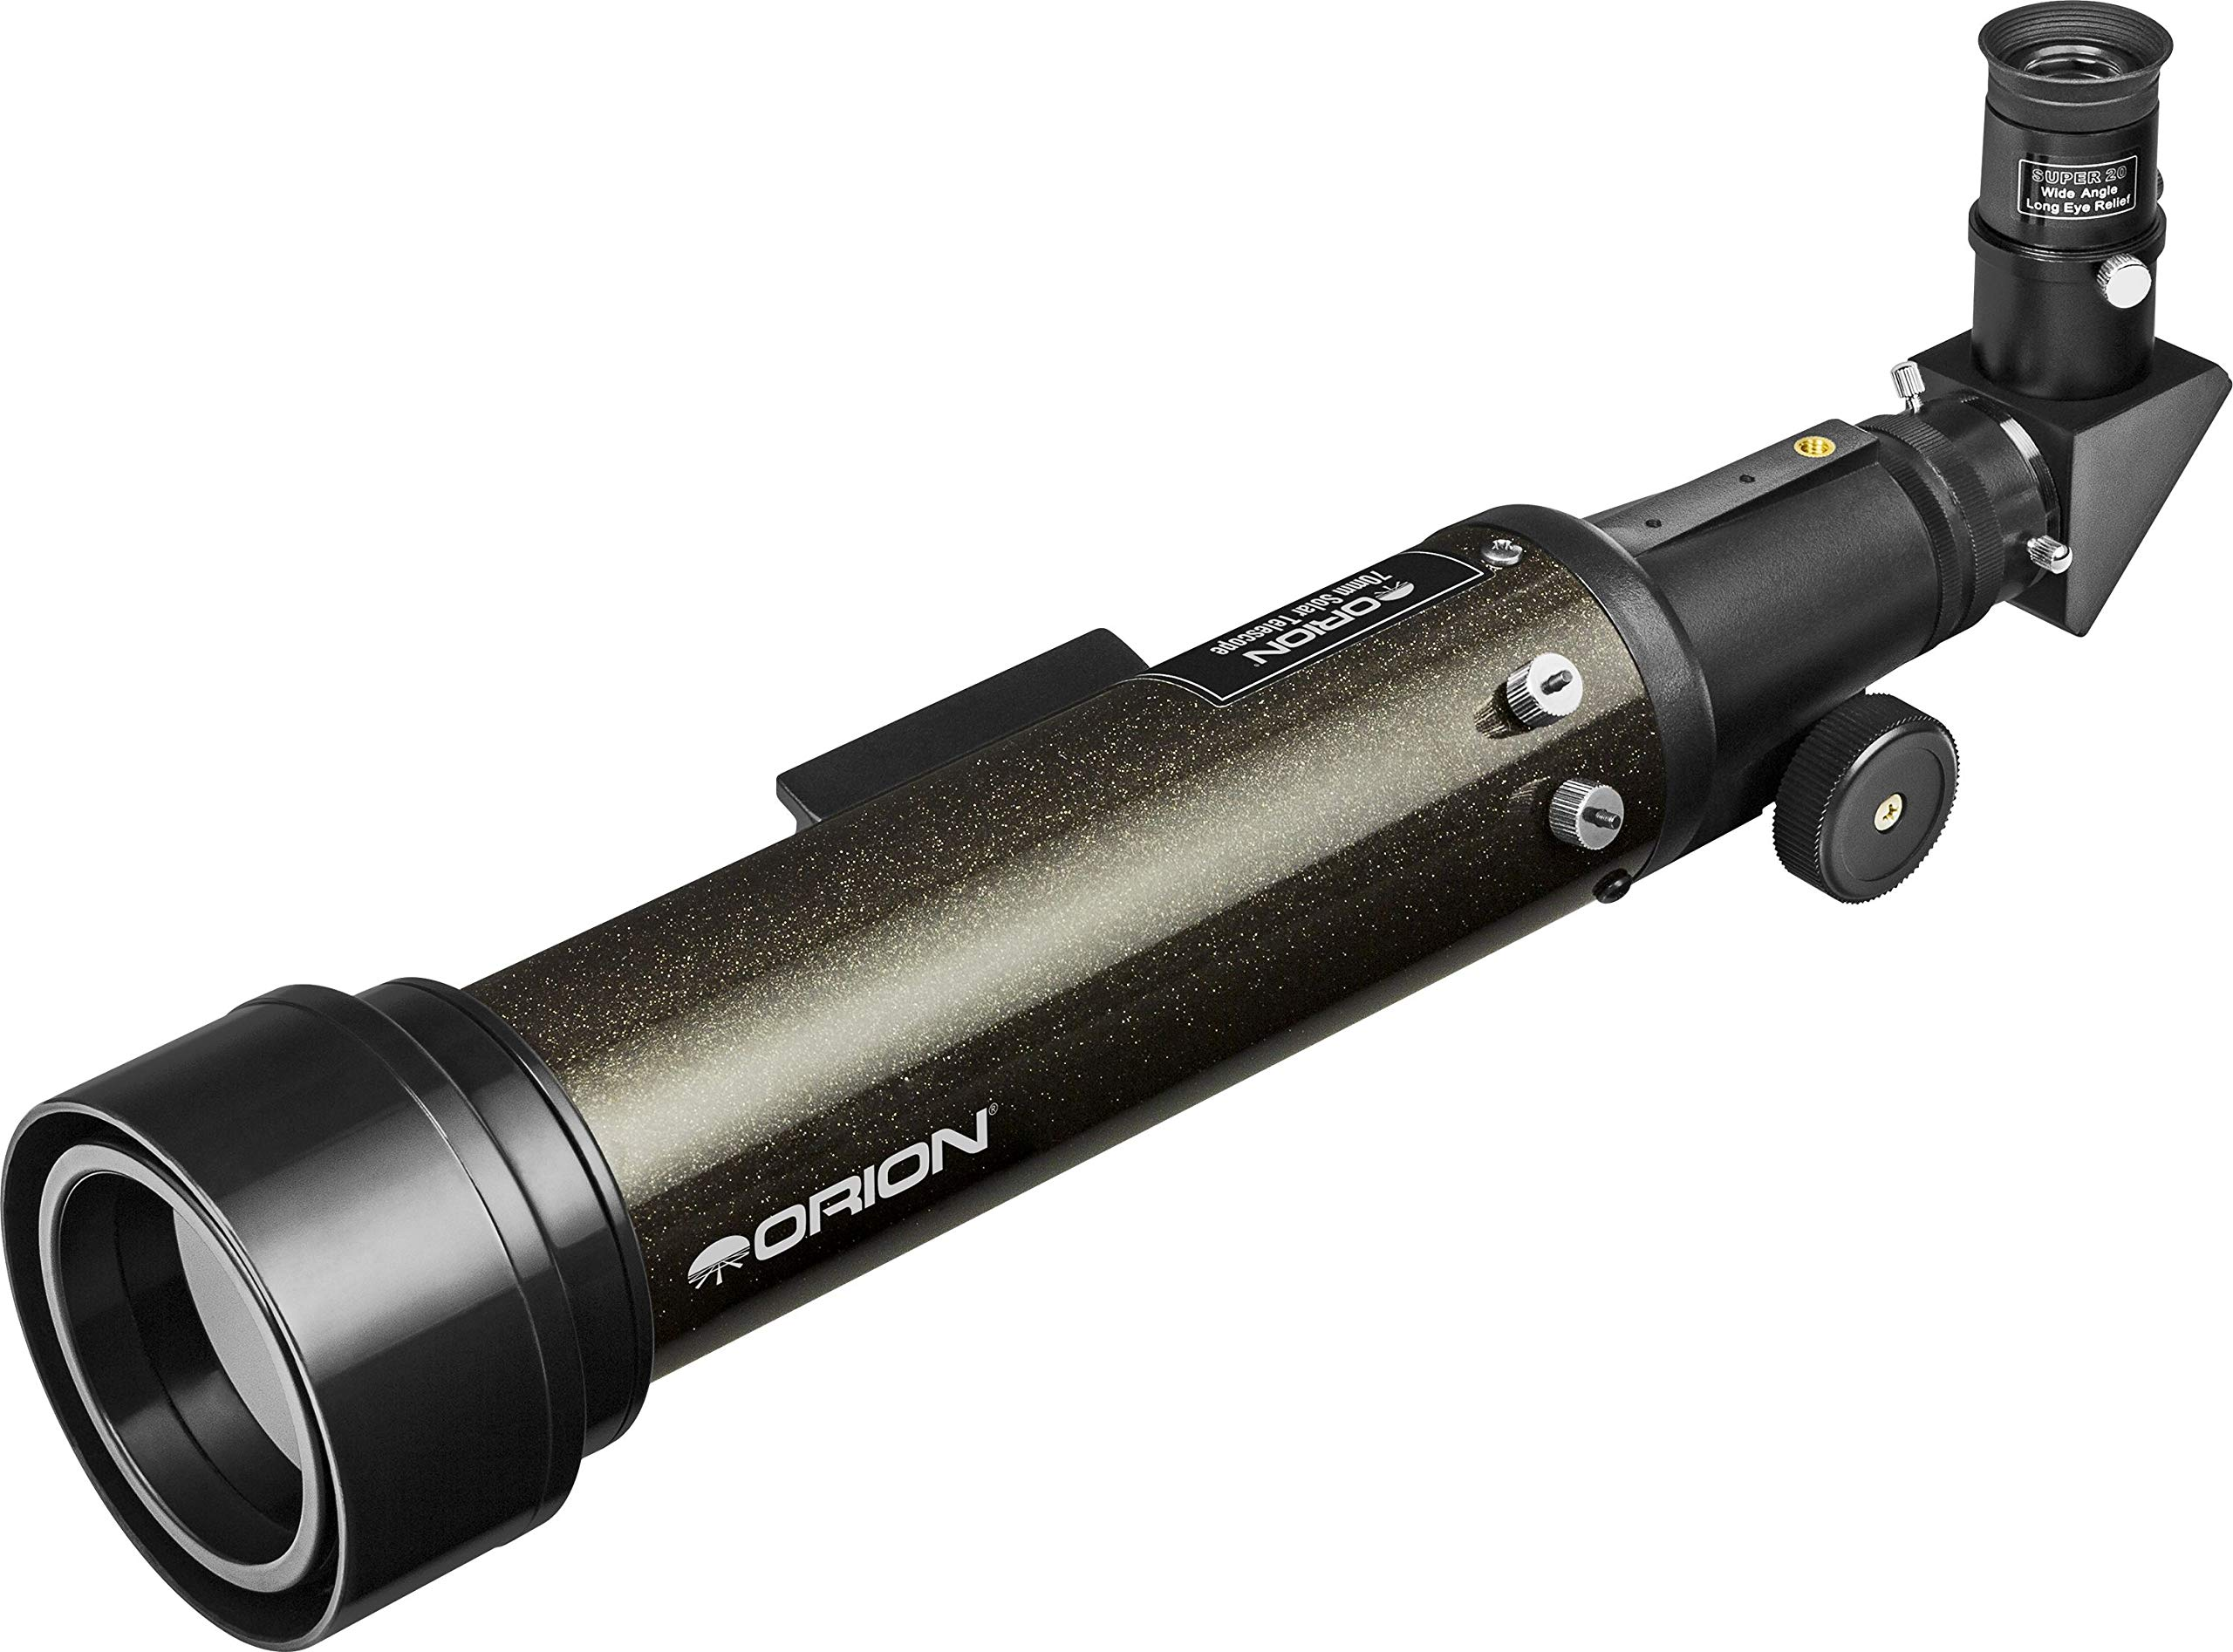 Orion 10381 White-Light Solar Refracting Telescope, Black by Orion